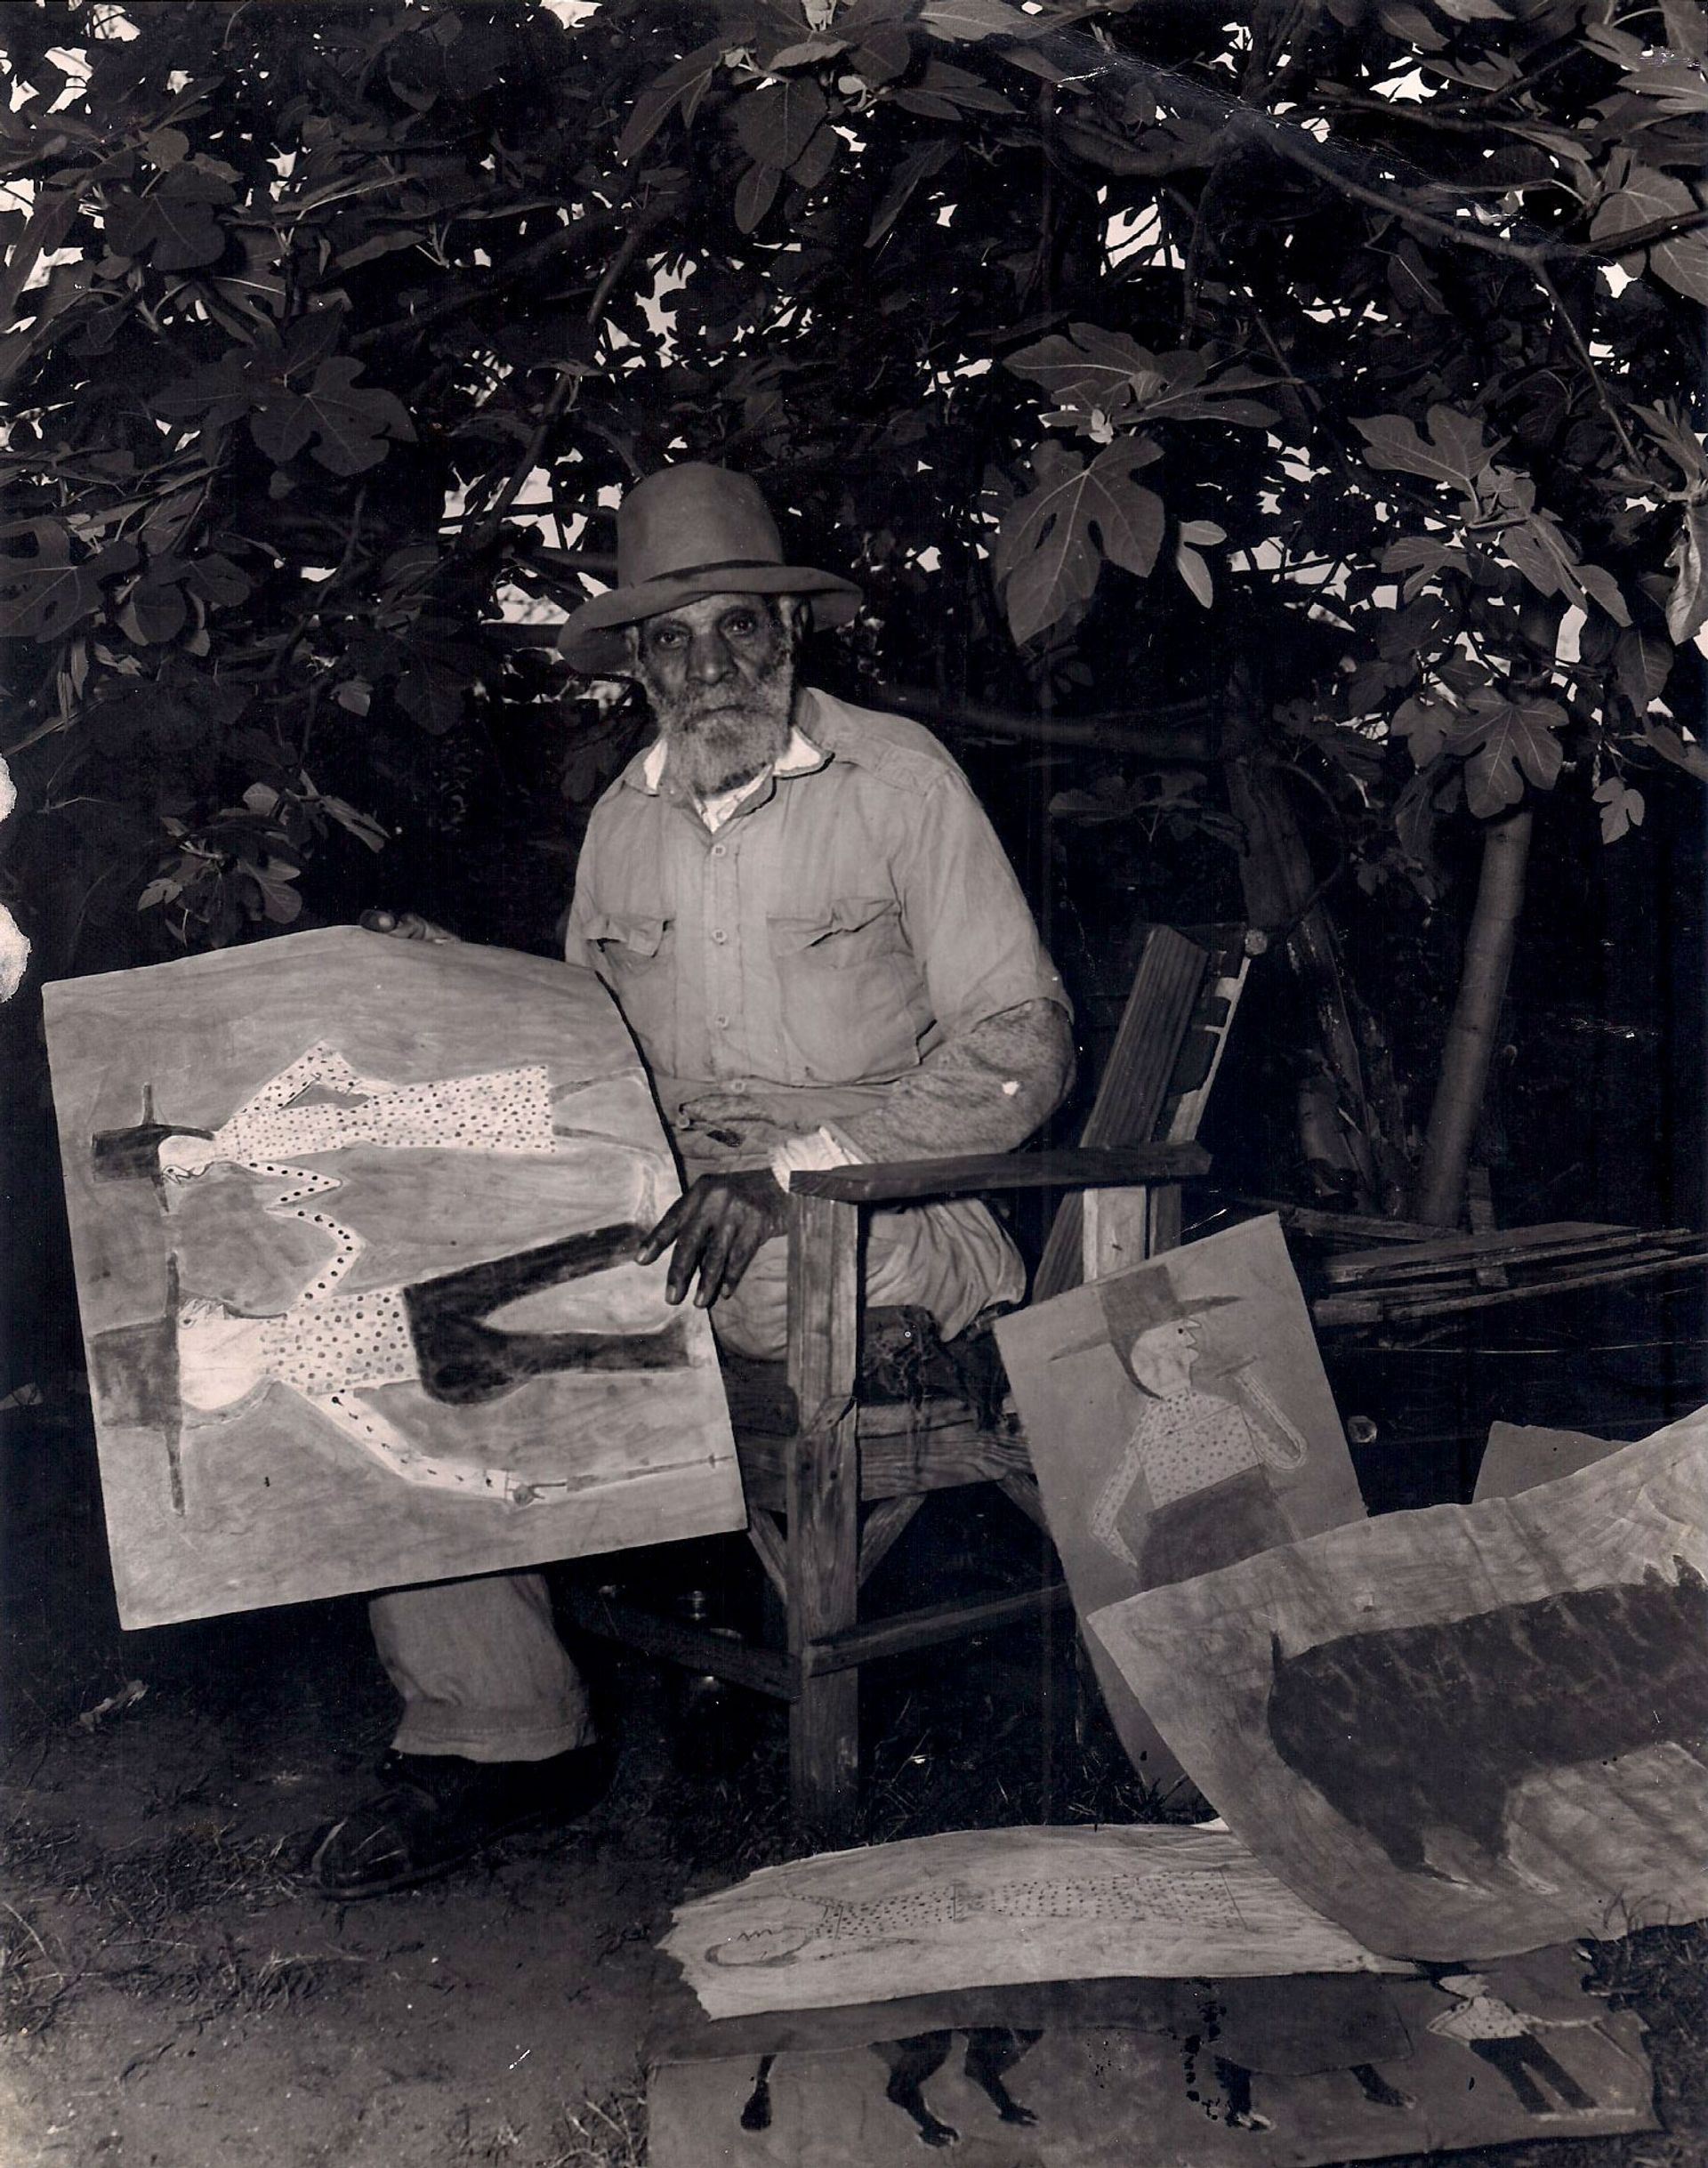 Bill Traylor started drawing in his 80s, after a lifetime working on the farms his family lived on since slavery Photo: Albert Kraus. Collection Tommy Giles Photographic Service